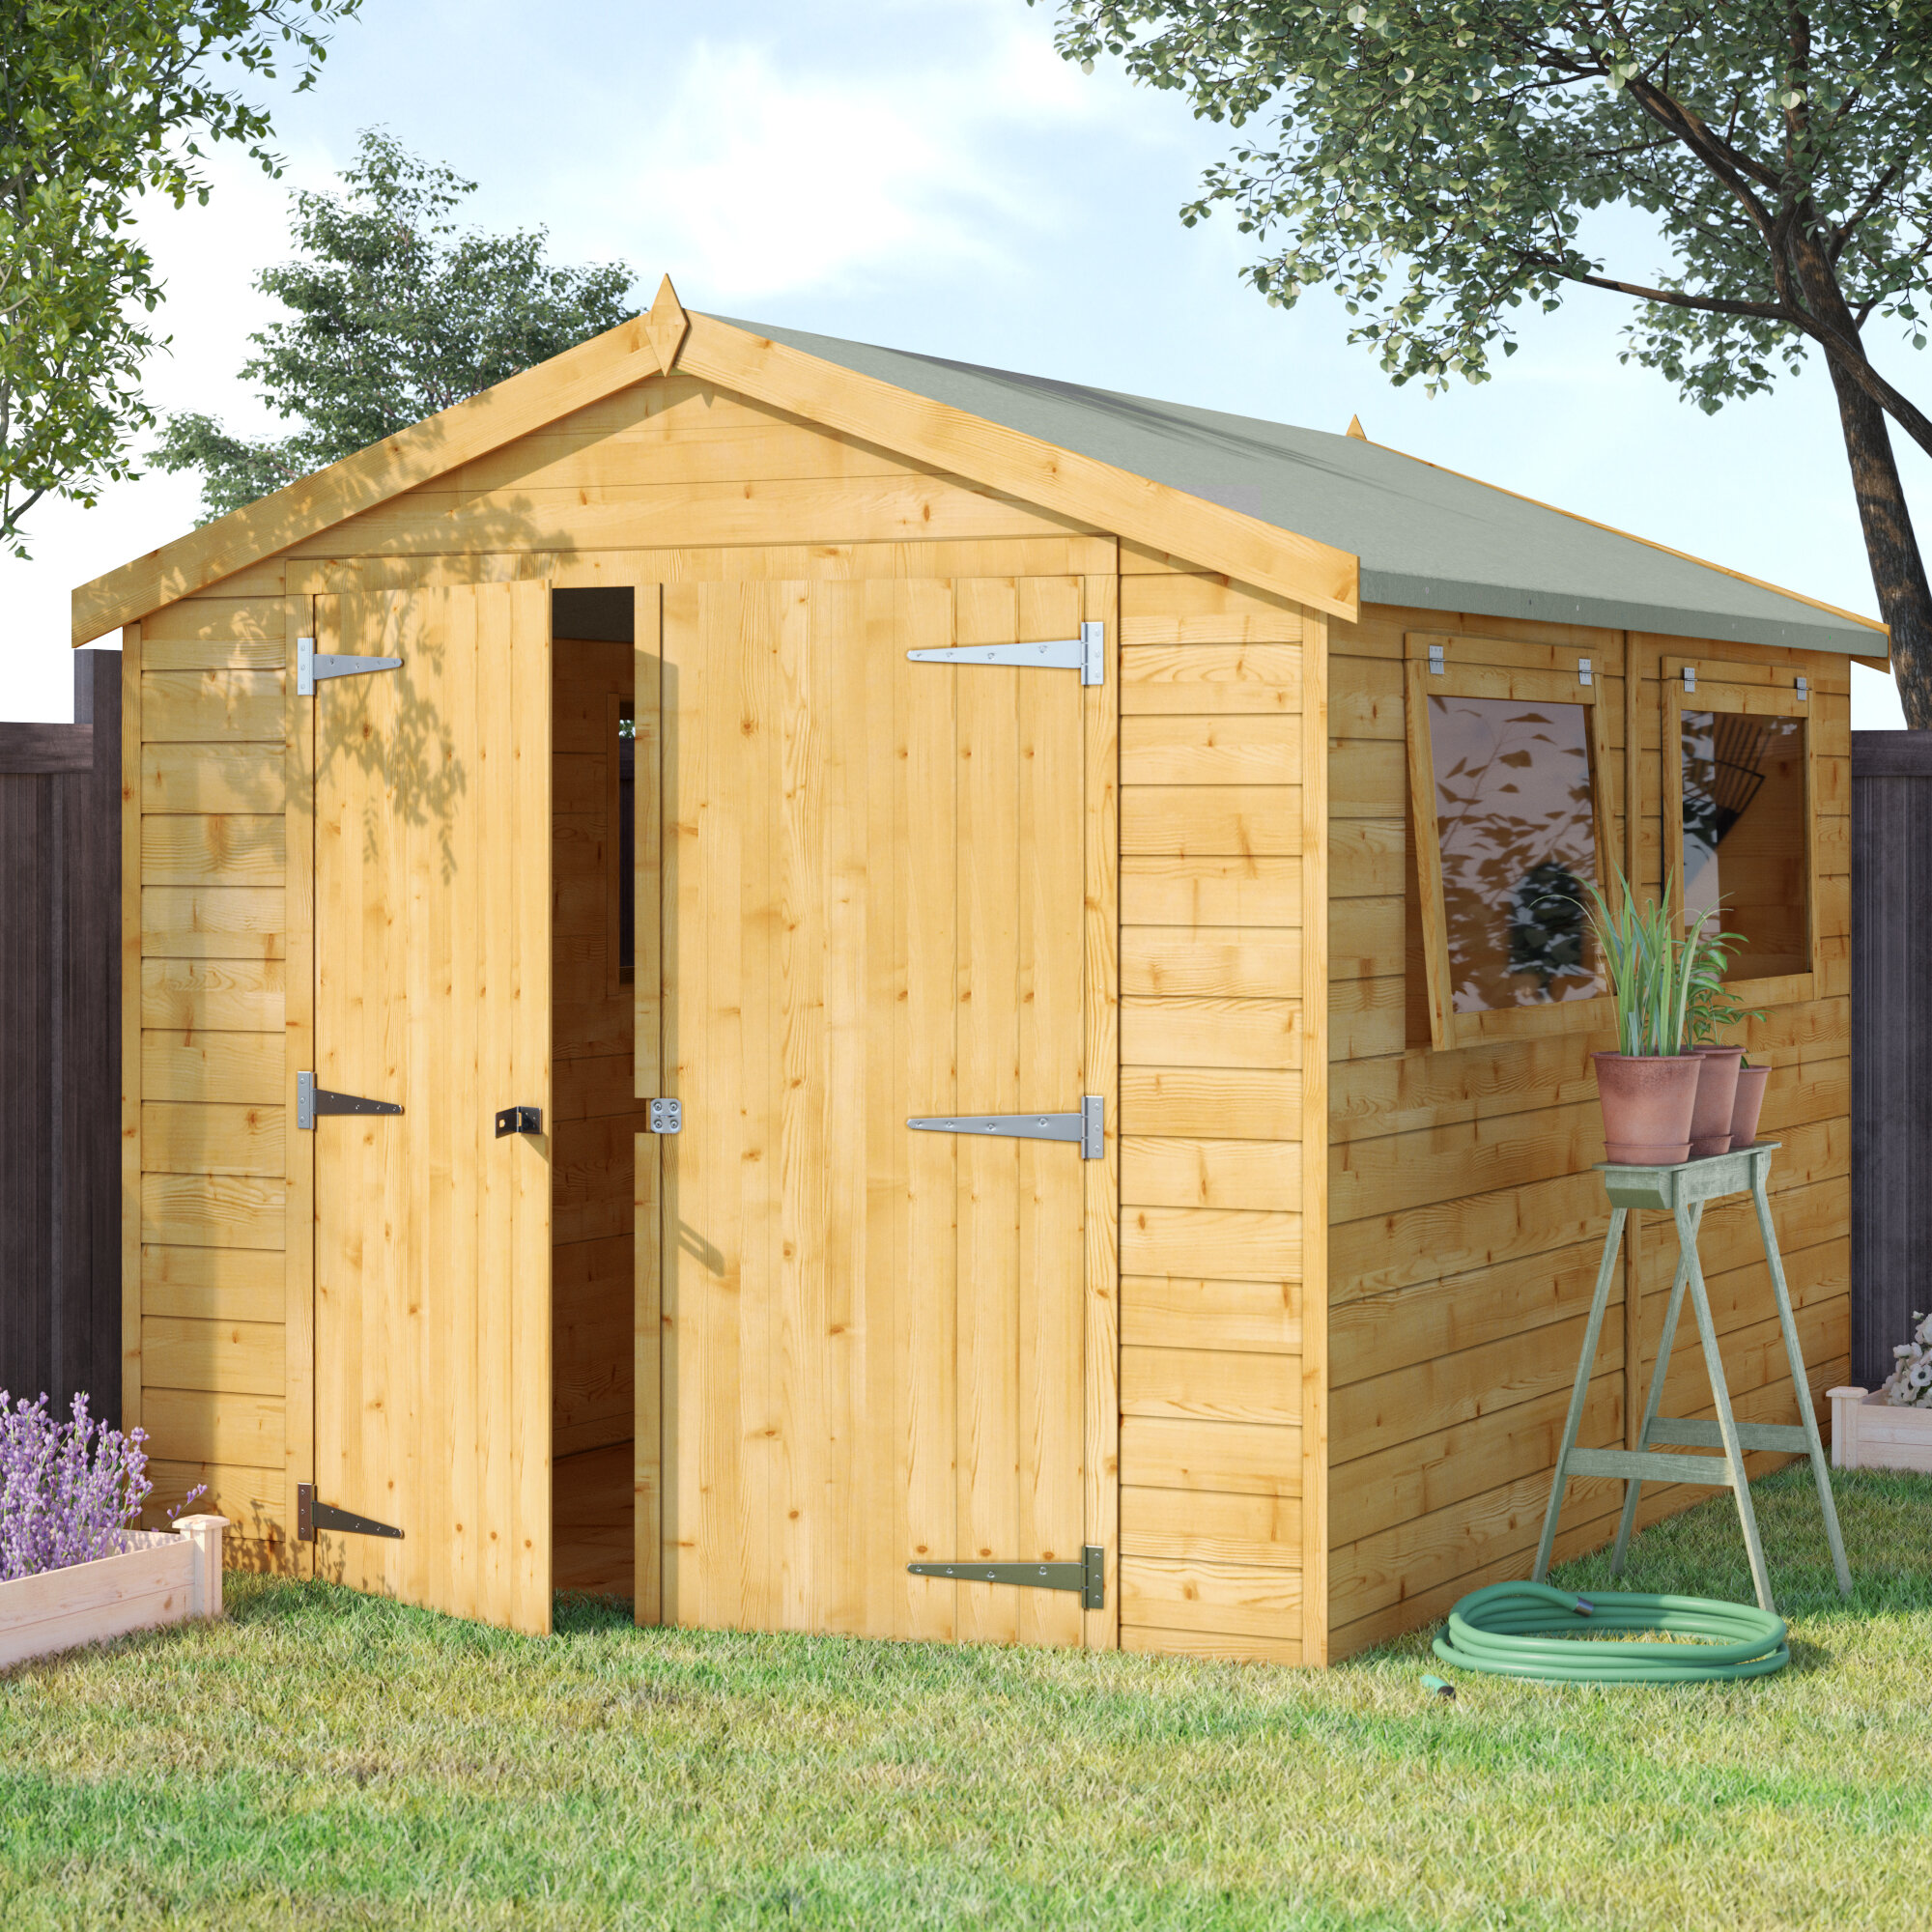 East Ham 8 Ft W X 10 Ft D Tongue And Groove Apex Wooden Shed